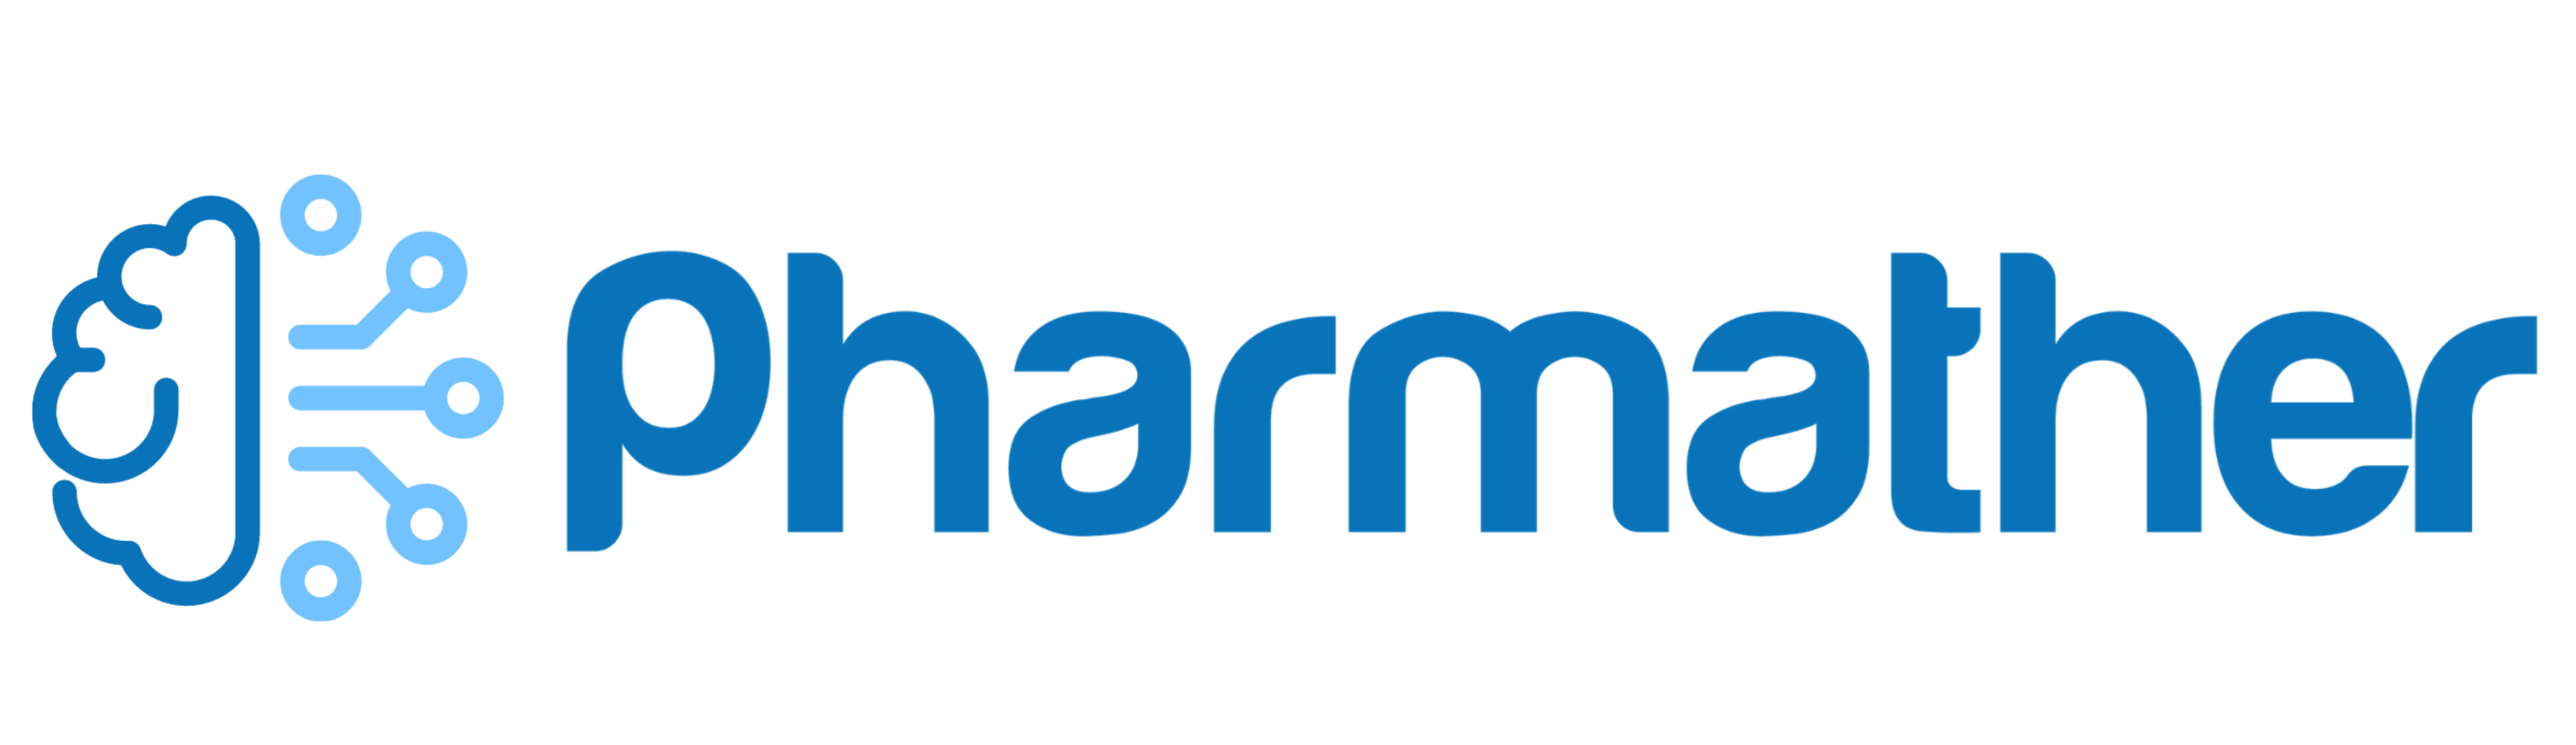 PharmaTher Expands Patent Portfolio with Filing of U.S